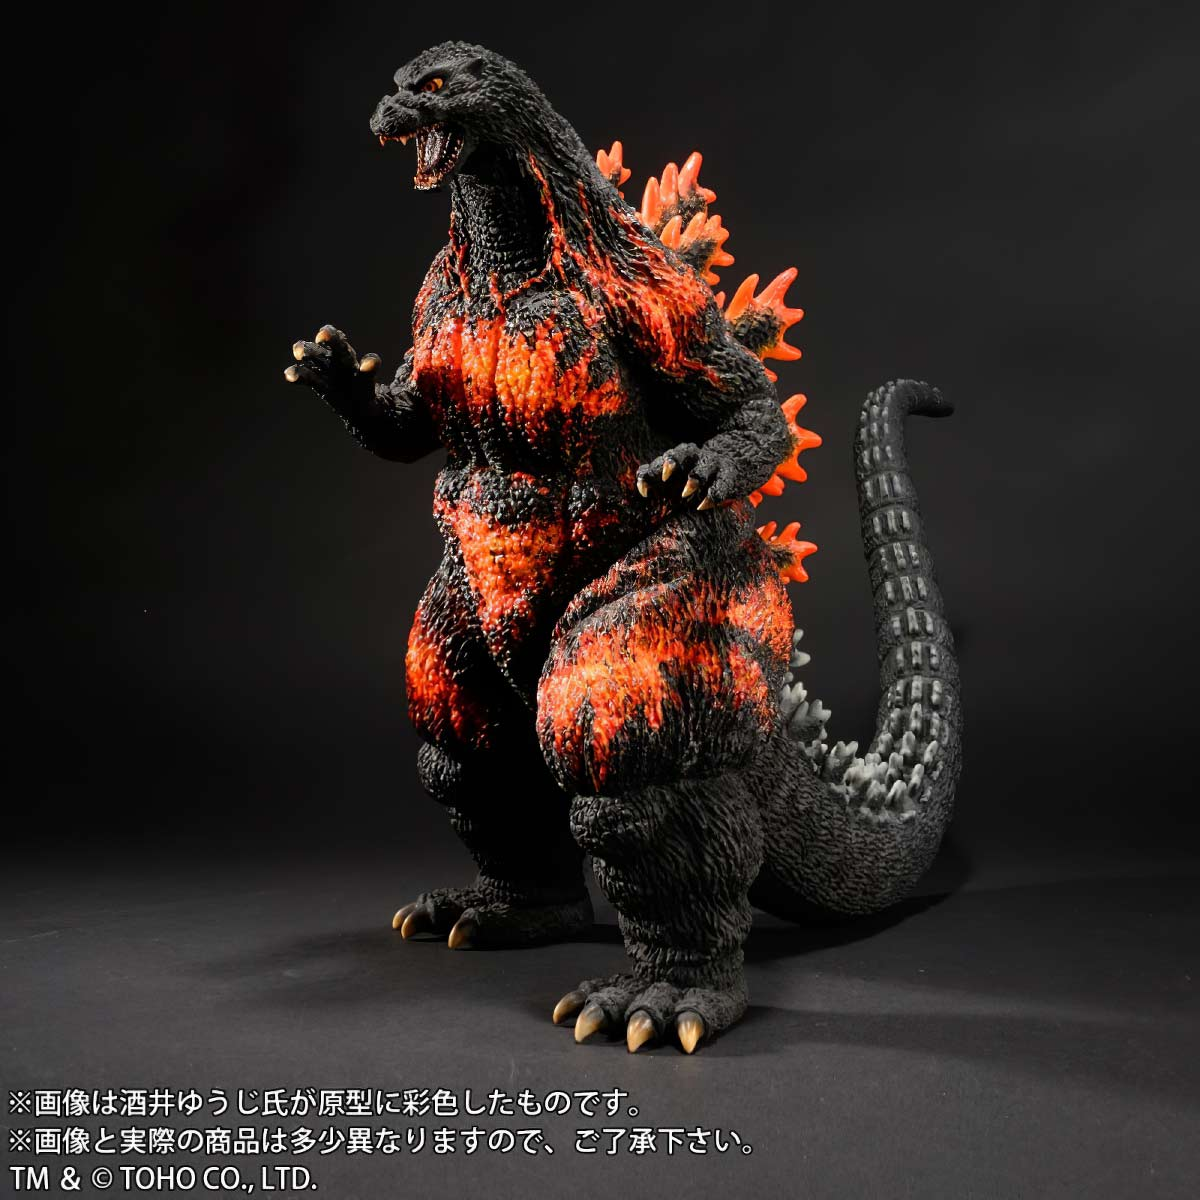 Left front view of the 30cm Series Yuji Sakai Modeling Collection Godzilla 1995 Standard vinyl figure by X-Plus.